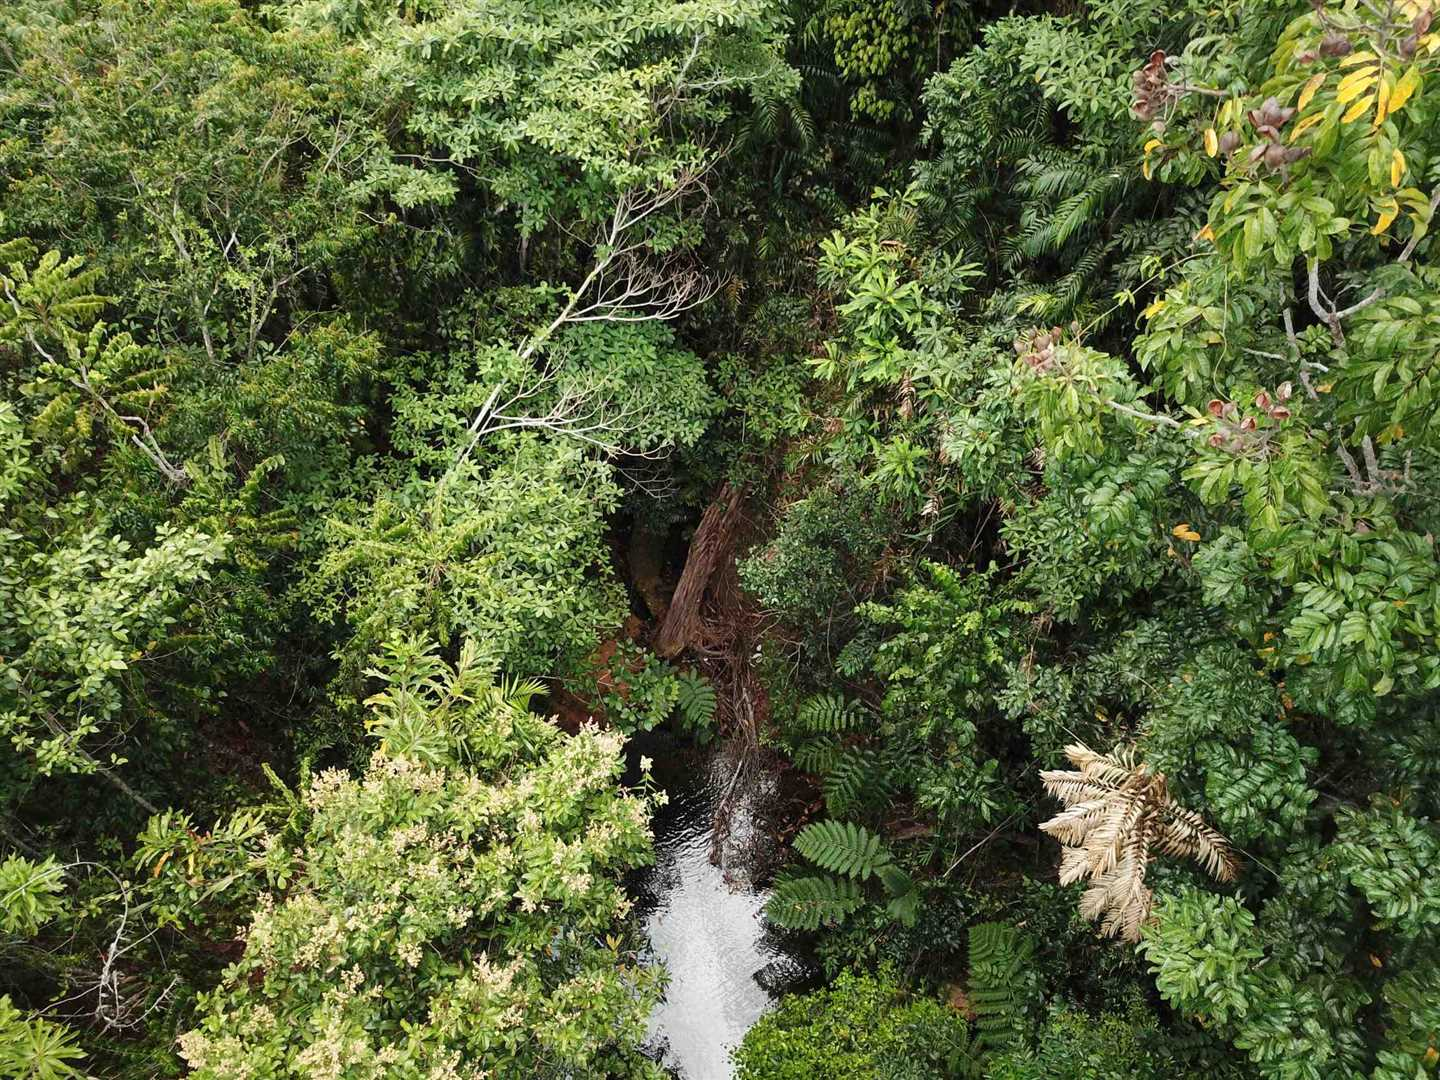 Aerial photo showing part of a creek and rainforest on the property